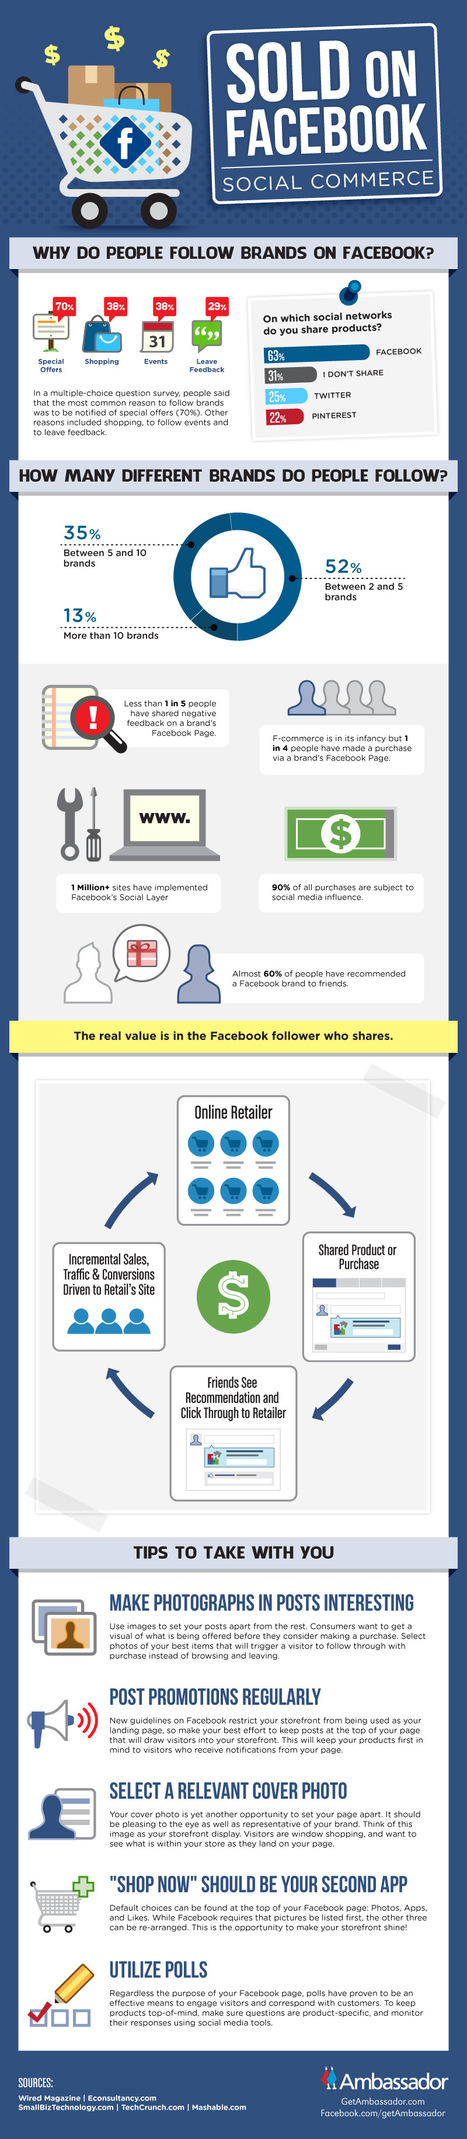 INFOGRAPHIC: What Makes People Sold On Brands On Facebook? | Personal Branding and Professional networks - @Socialfave @TheMisterFavor @TOOLS_BOX_DEV @TOOLS_BOX_EUR @P_TREBAUL @DNAMktg @DNADatas @BRETAGNE_CHARME @TOOLS_BOX_IND @TOOLS_BOX_ITA @TOOLS_BOX_UK @TOOLS_BOX_ESP @TOOLS_BOX_GER @TOOLS_BOX_DEV @TOOLS_BOX_BRA | Scoop.it